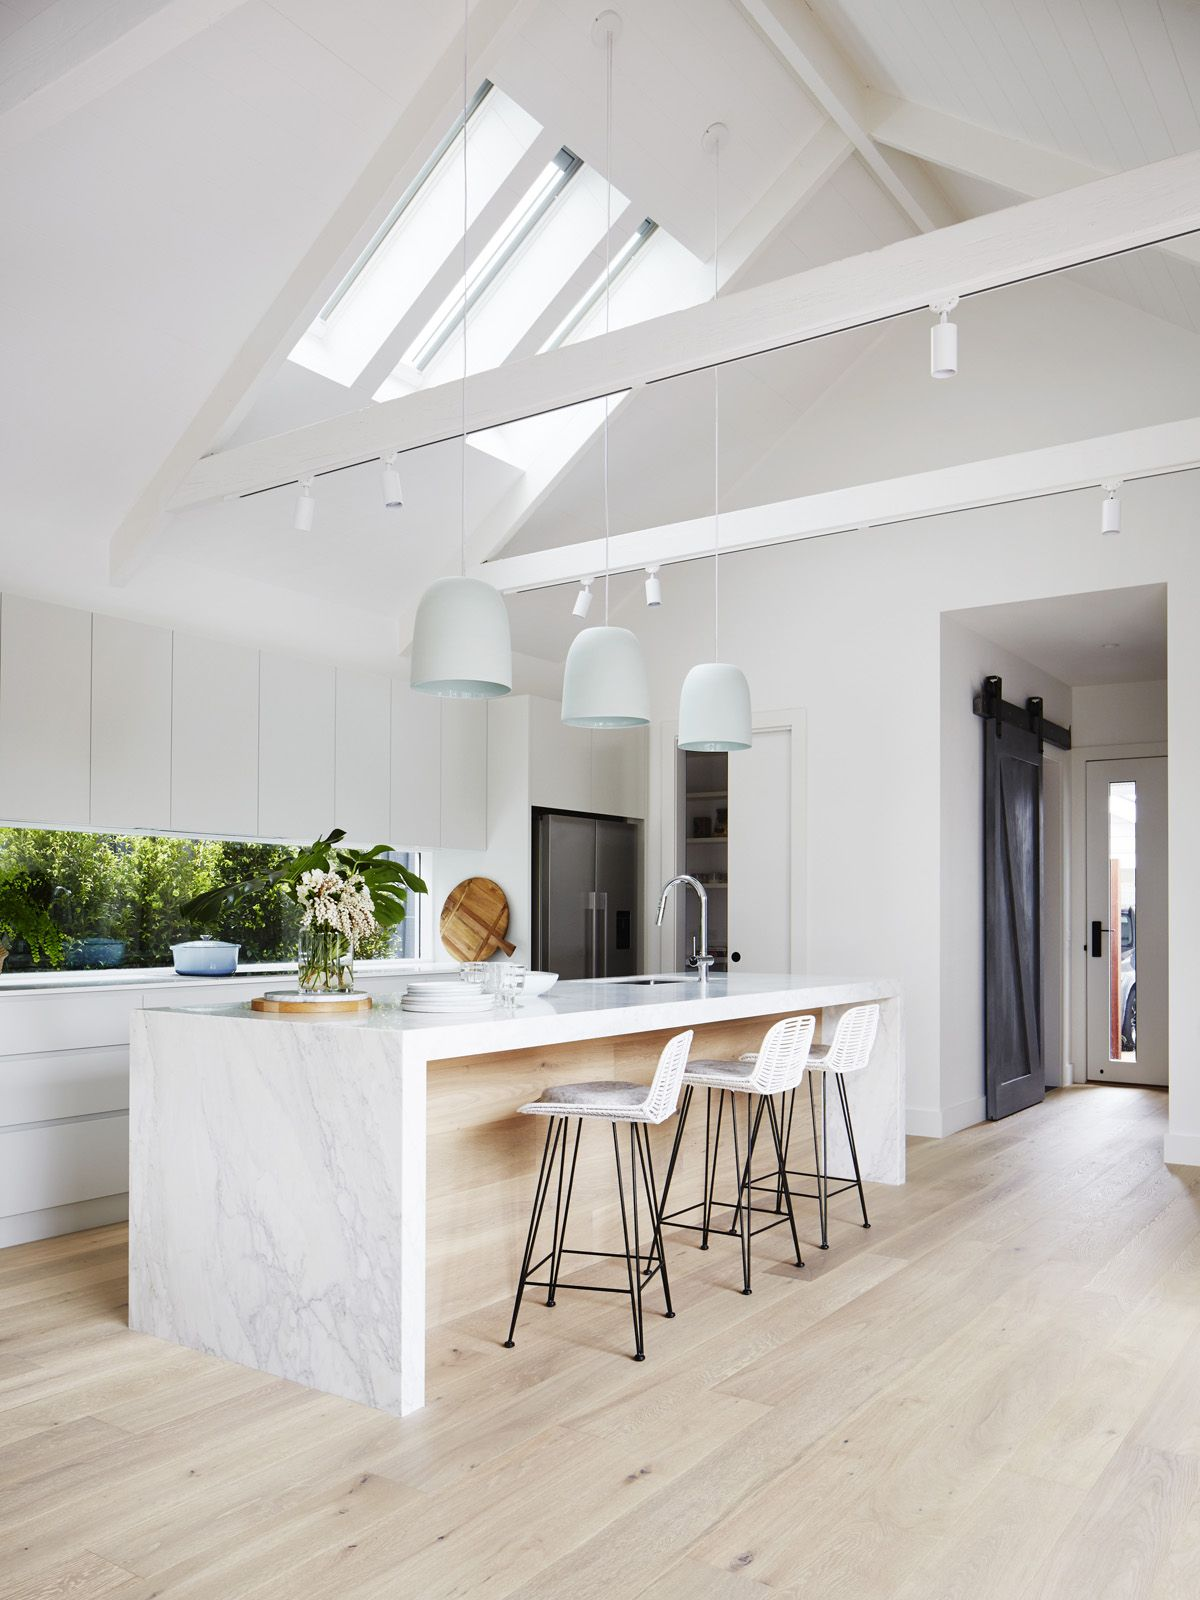 Pin by Anna Feast on AFID JF Kitchen | Pinterest | Kitchens and Spaces